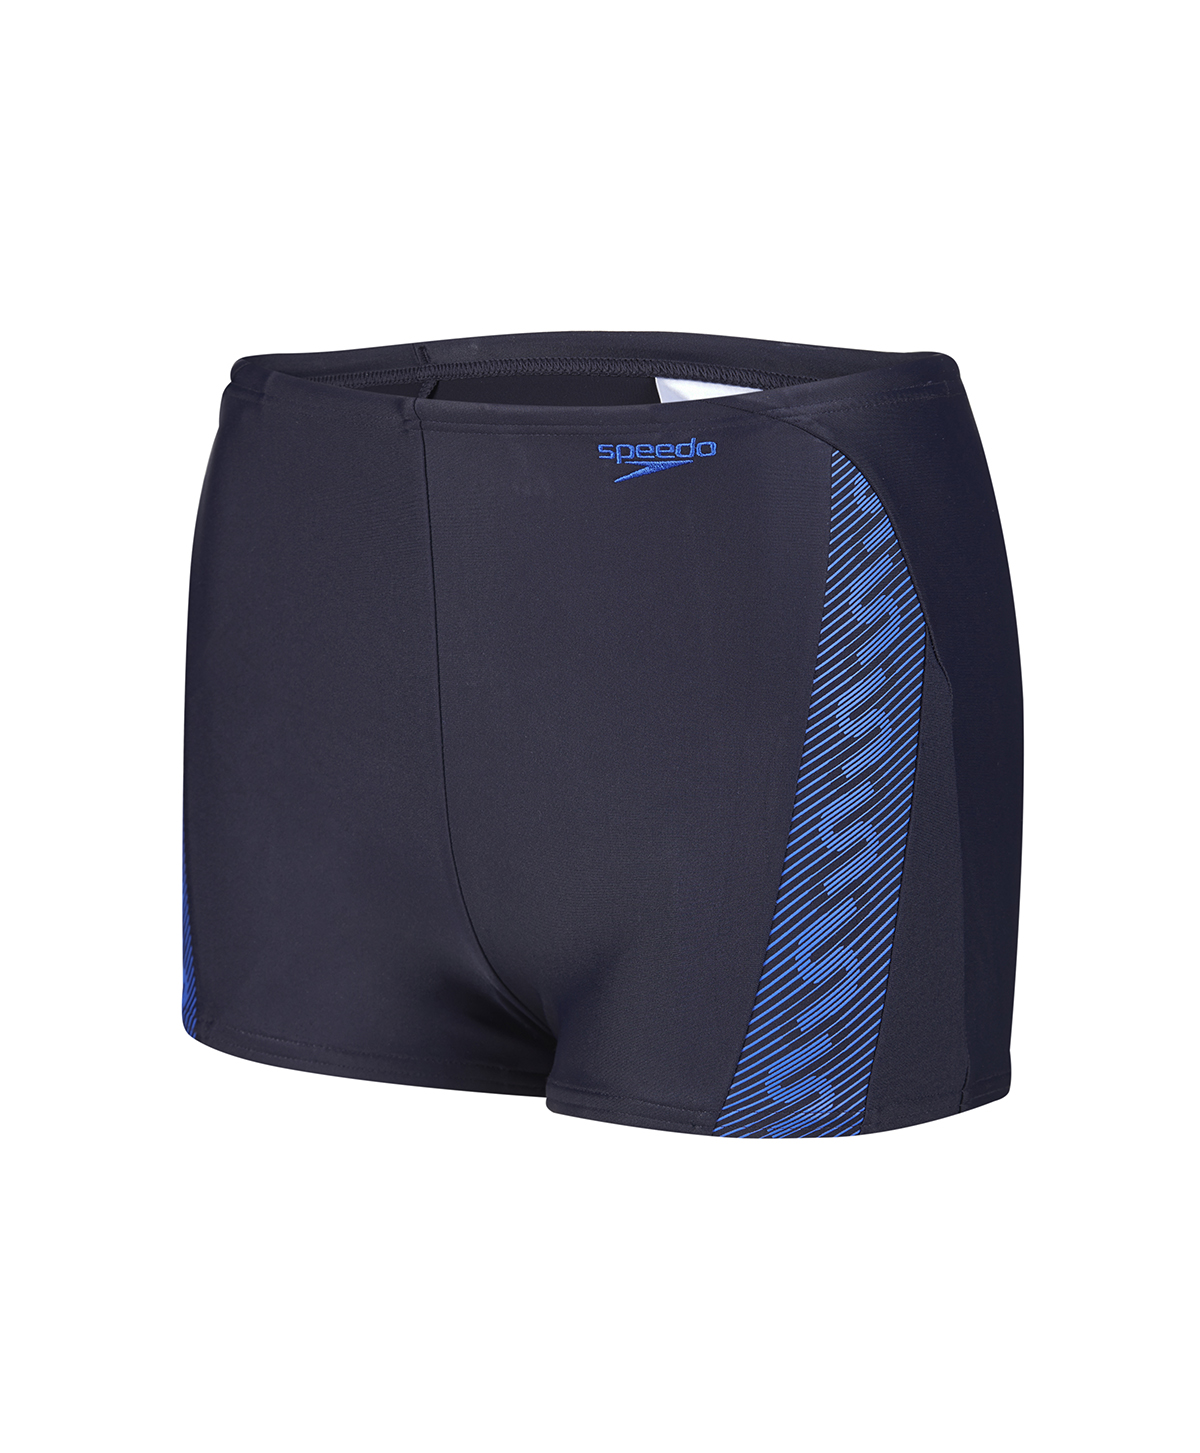 Speedo Boys Monogram Aquashort - Grey/Blue